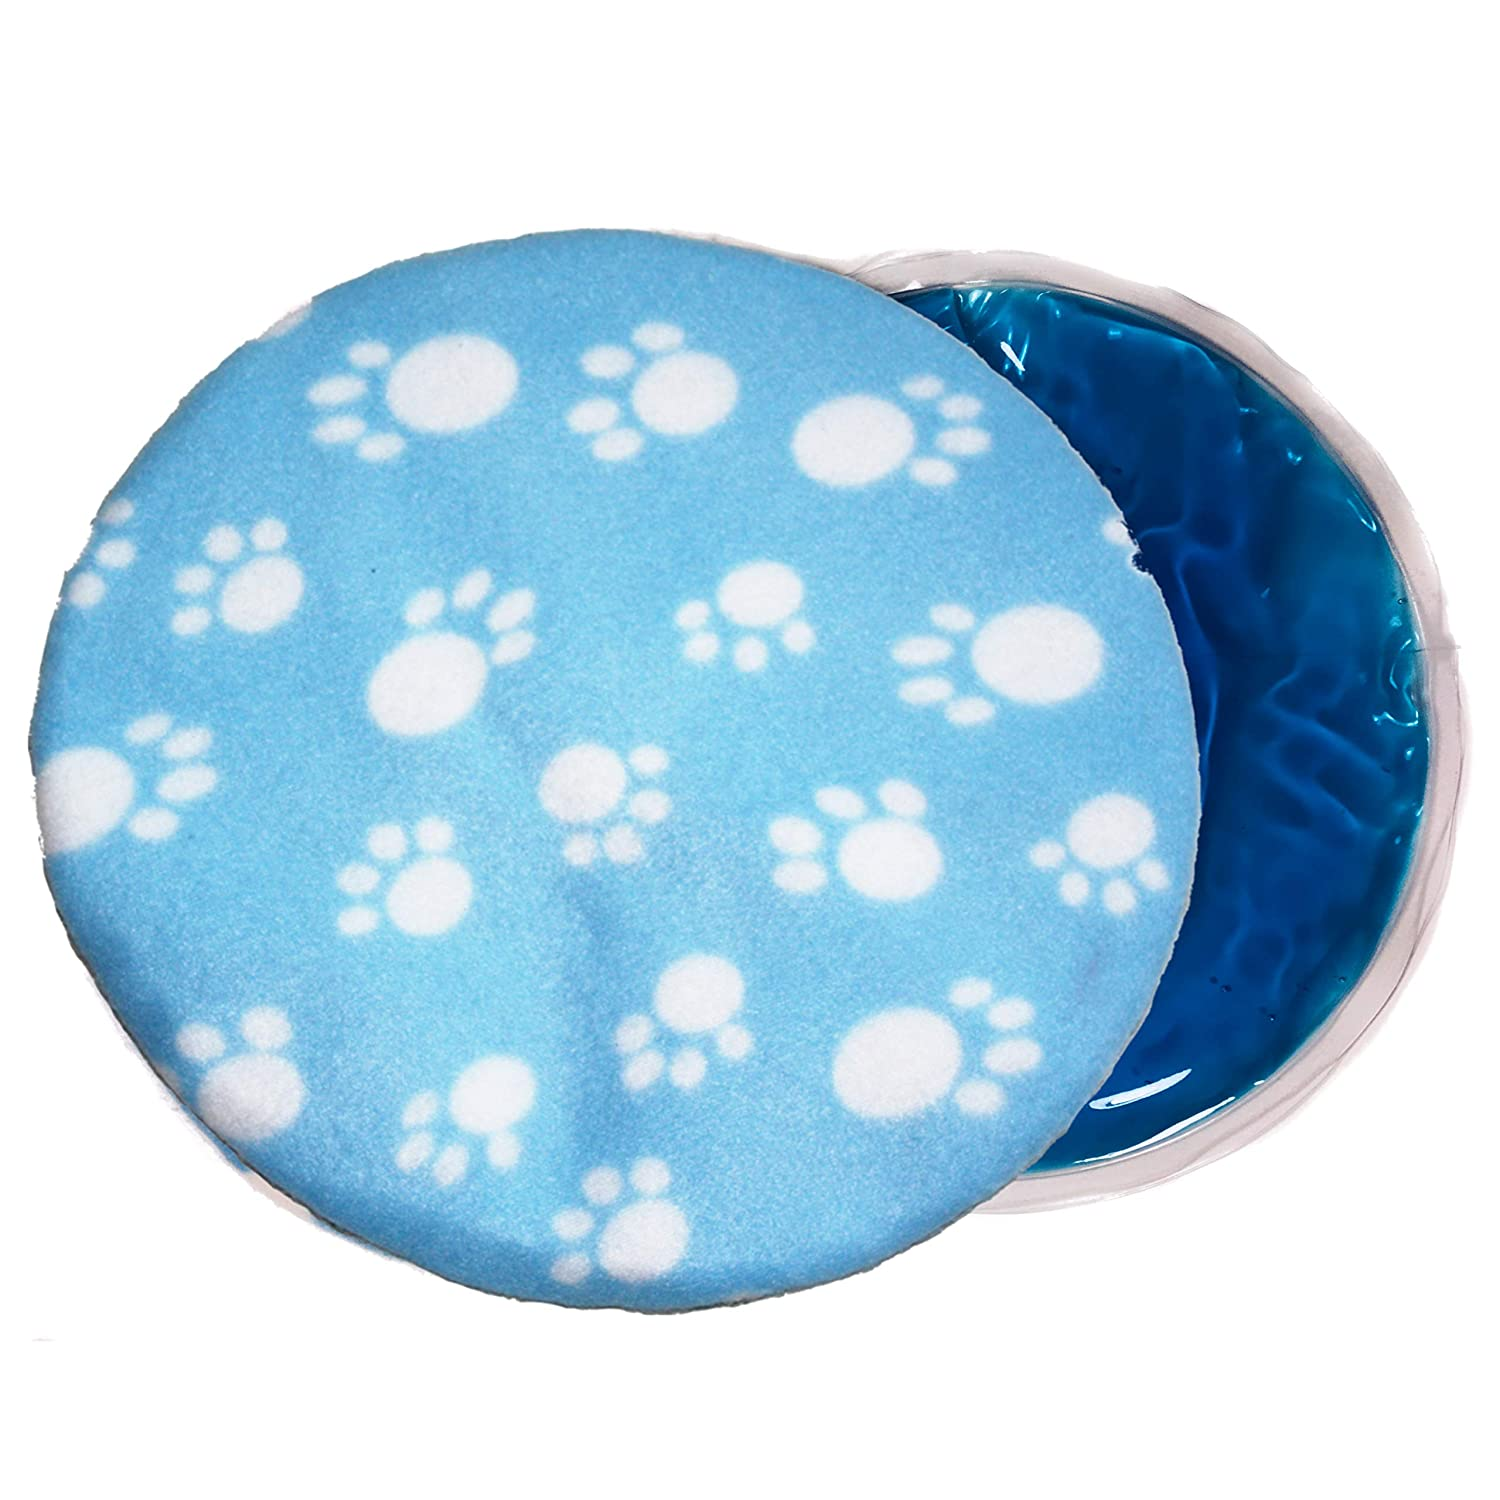 Pet Fit For Life Microwavable Cooling and Heating Pad